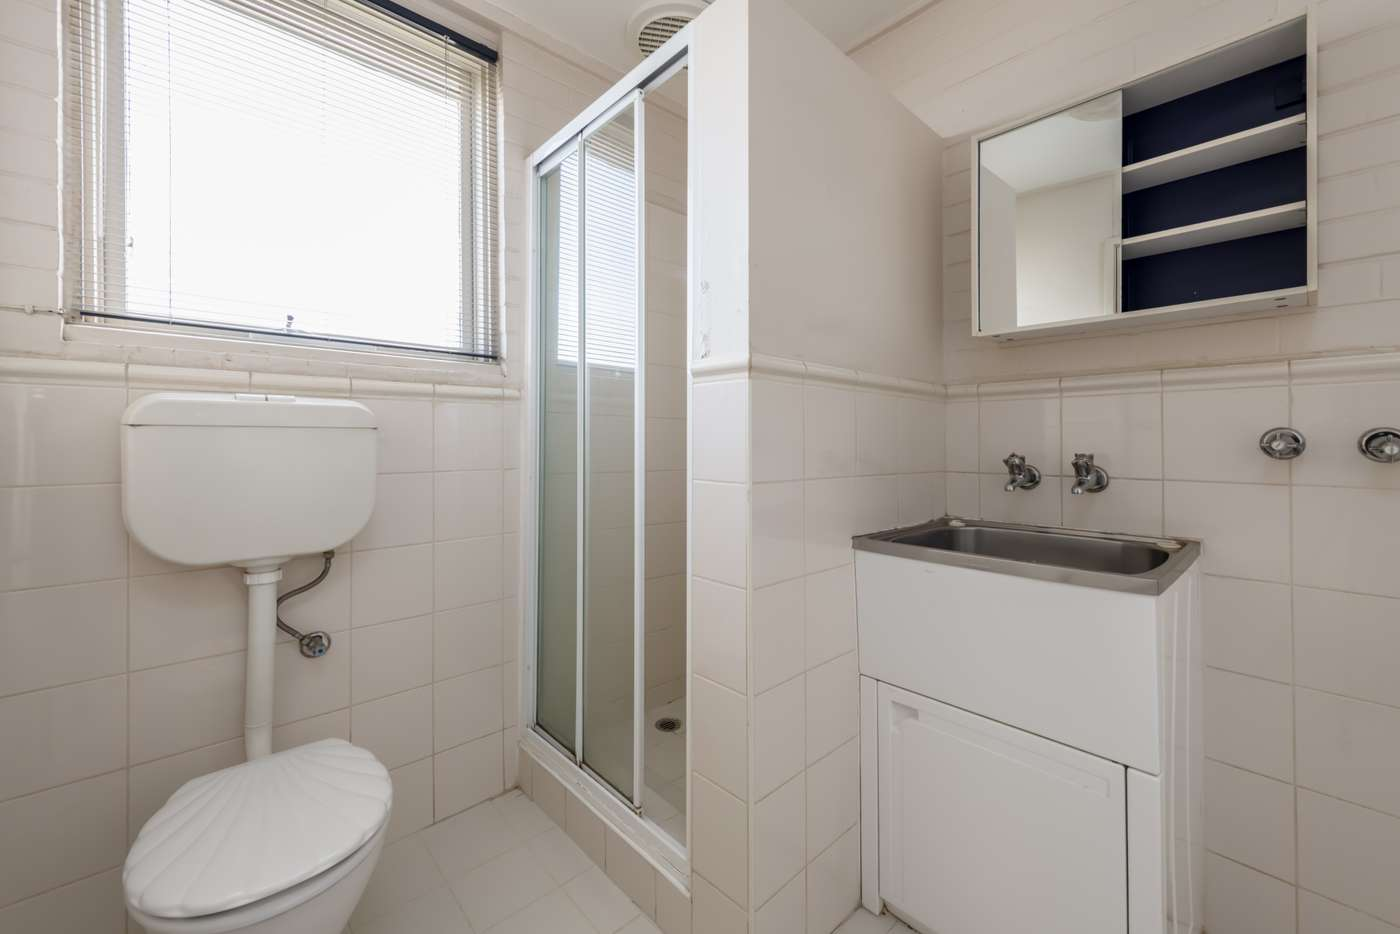 Sixth view of Homely apartment listing, 12/75 Pender Street, Thornbury VIC 3071